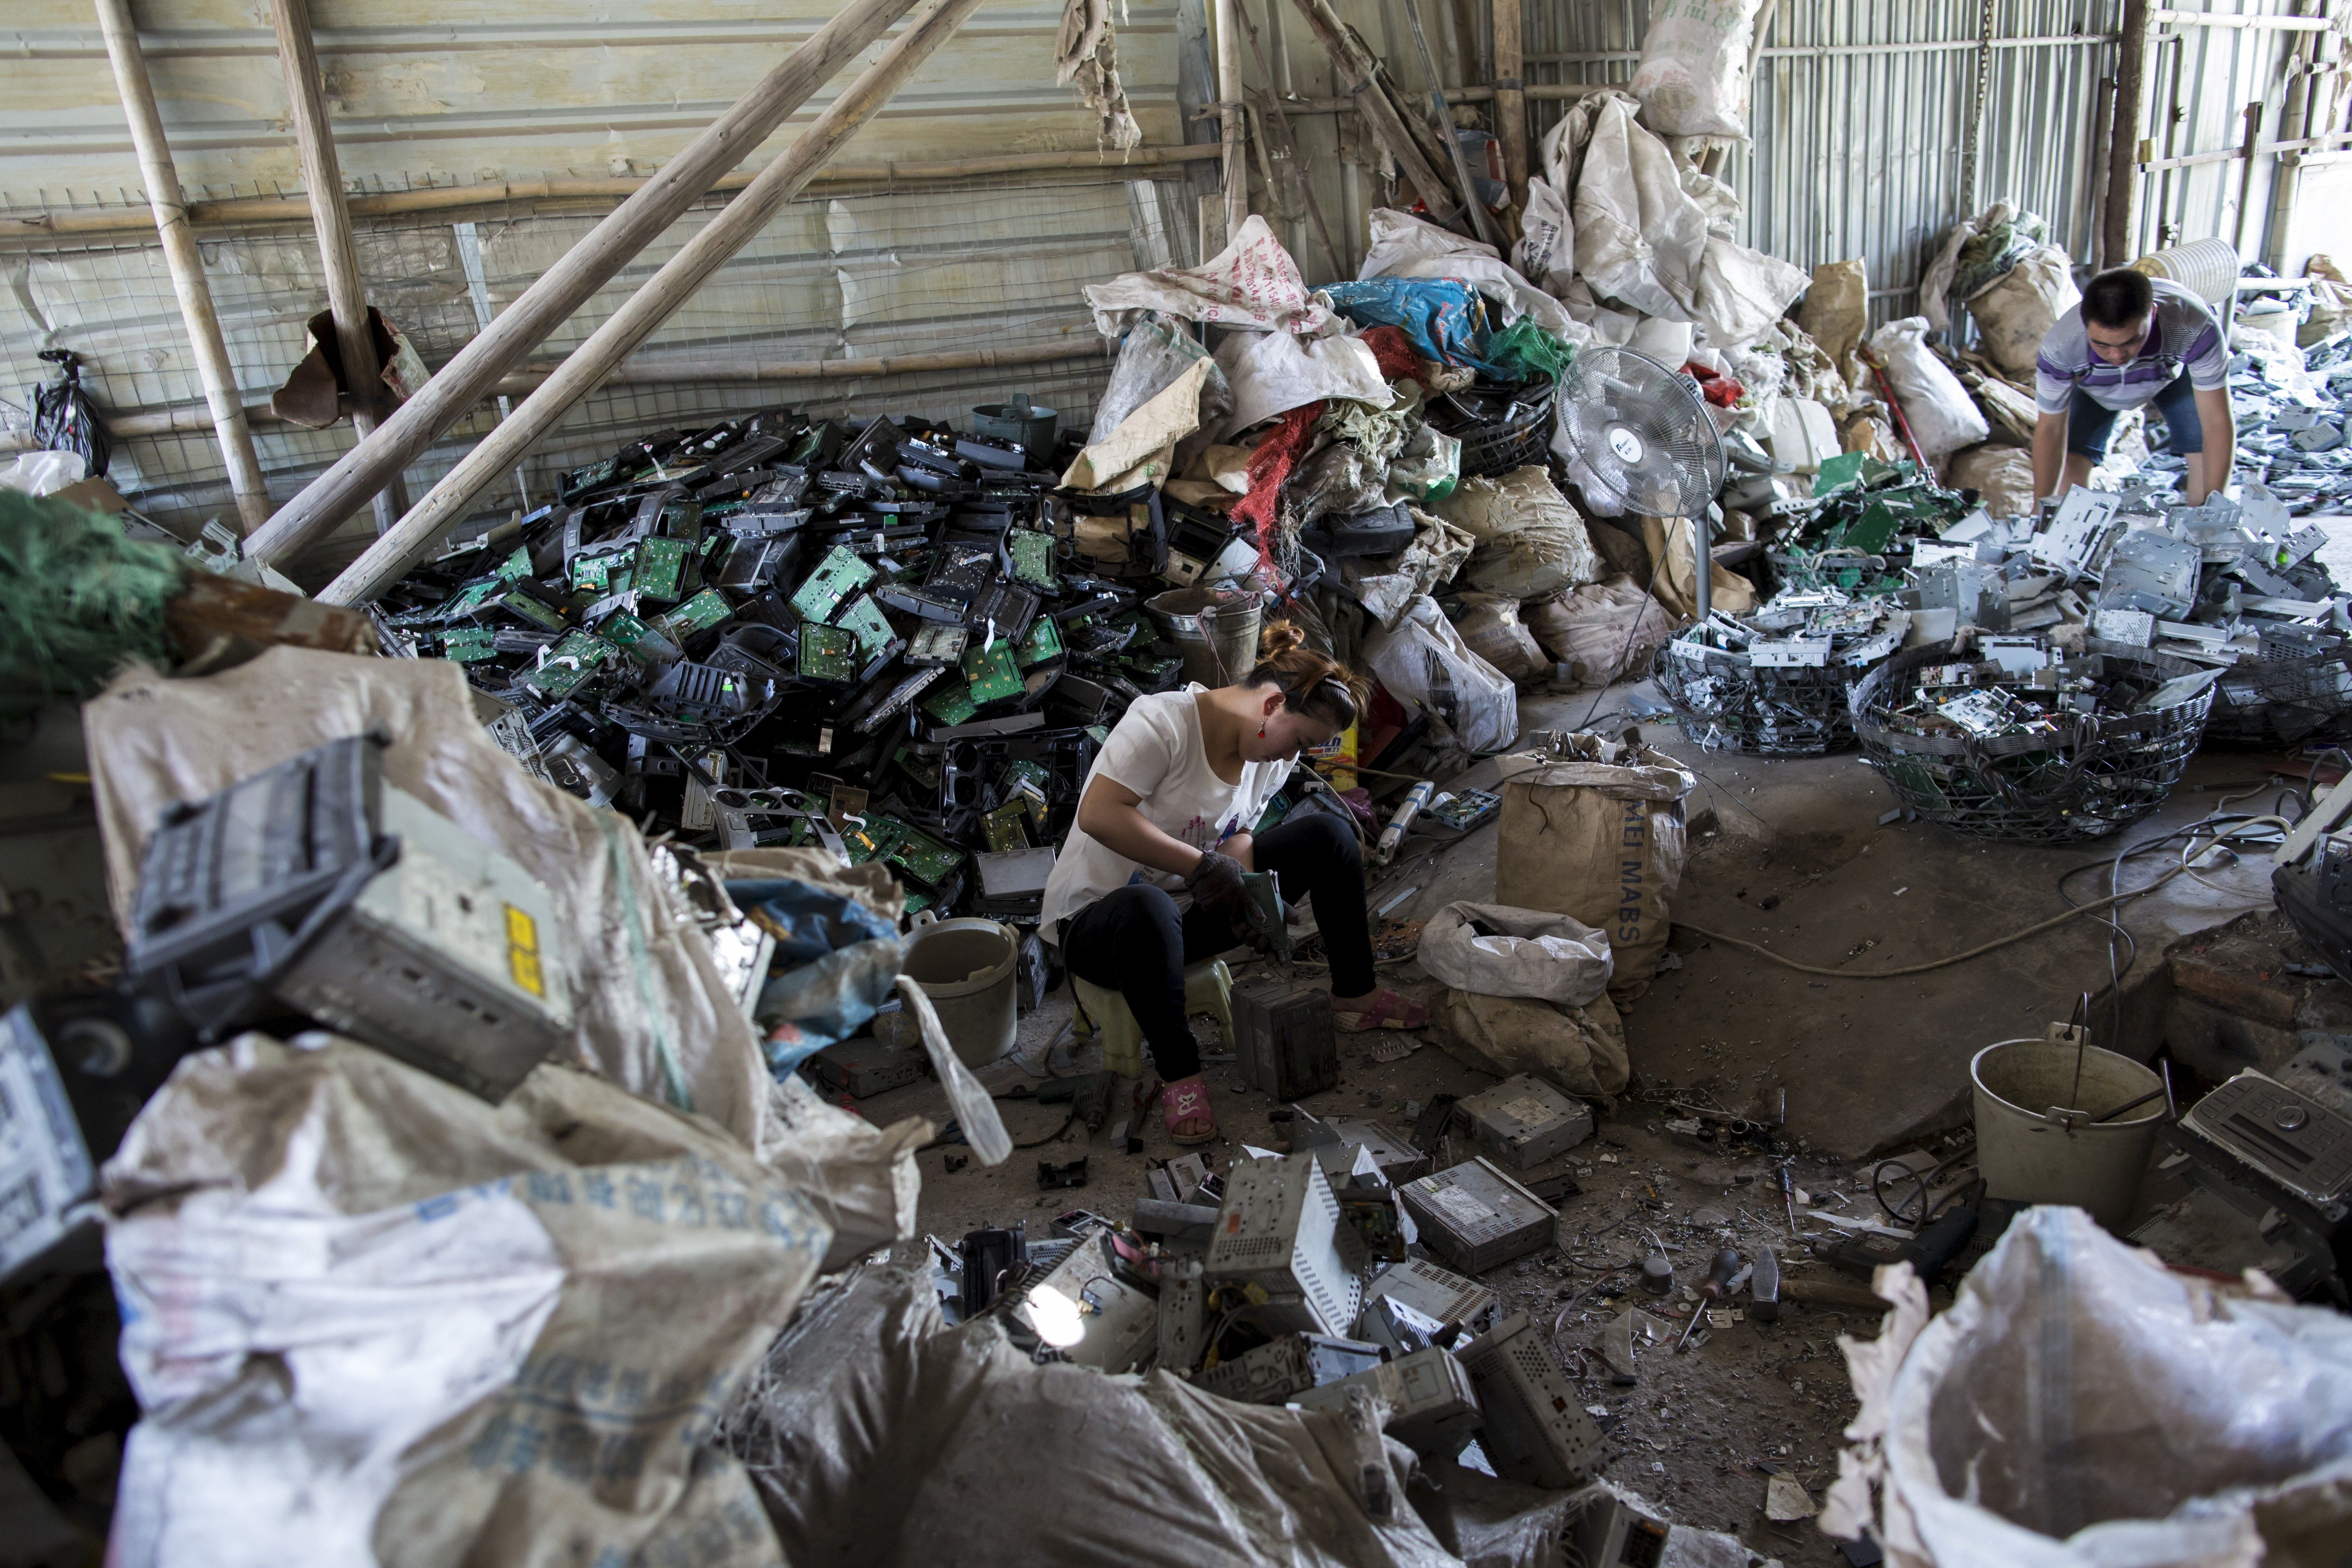 UK Waste Mountains 'Highly Likely' Within Weeks As China Bans 'Foreign Garbage'